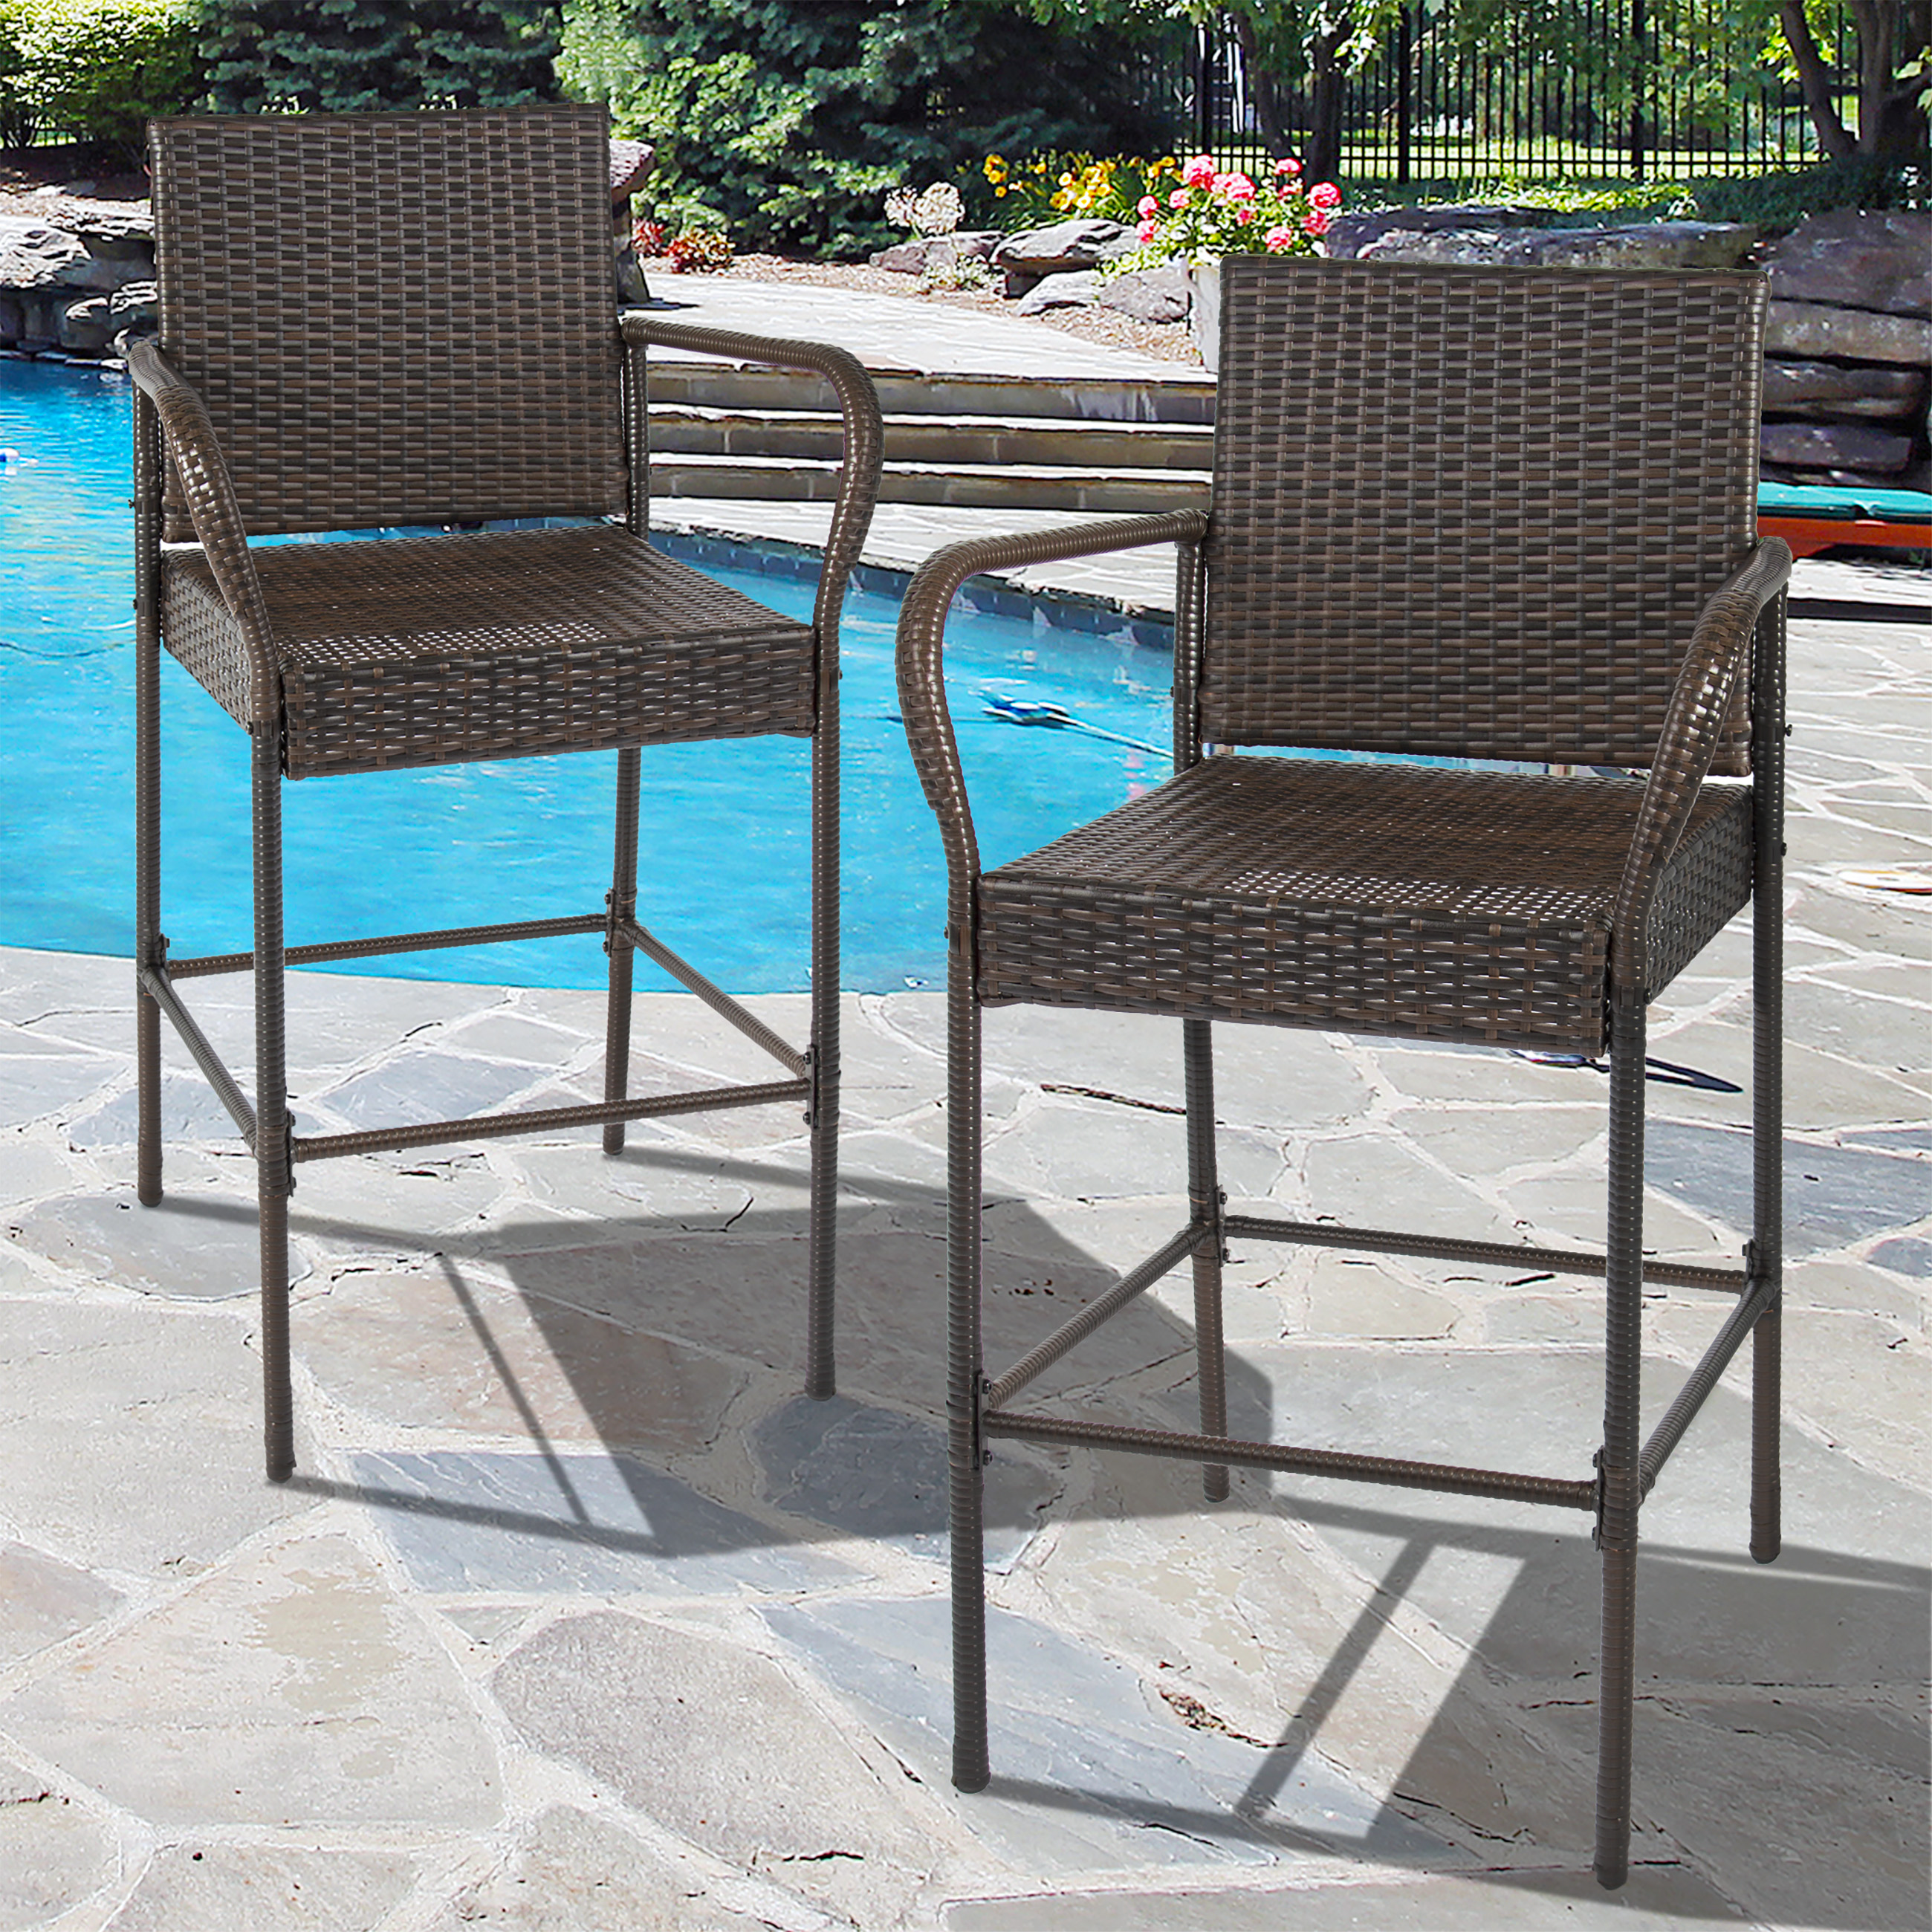 Beautiful top Rated Patio Furniture